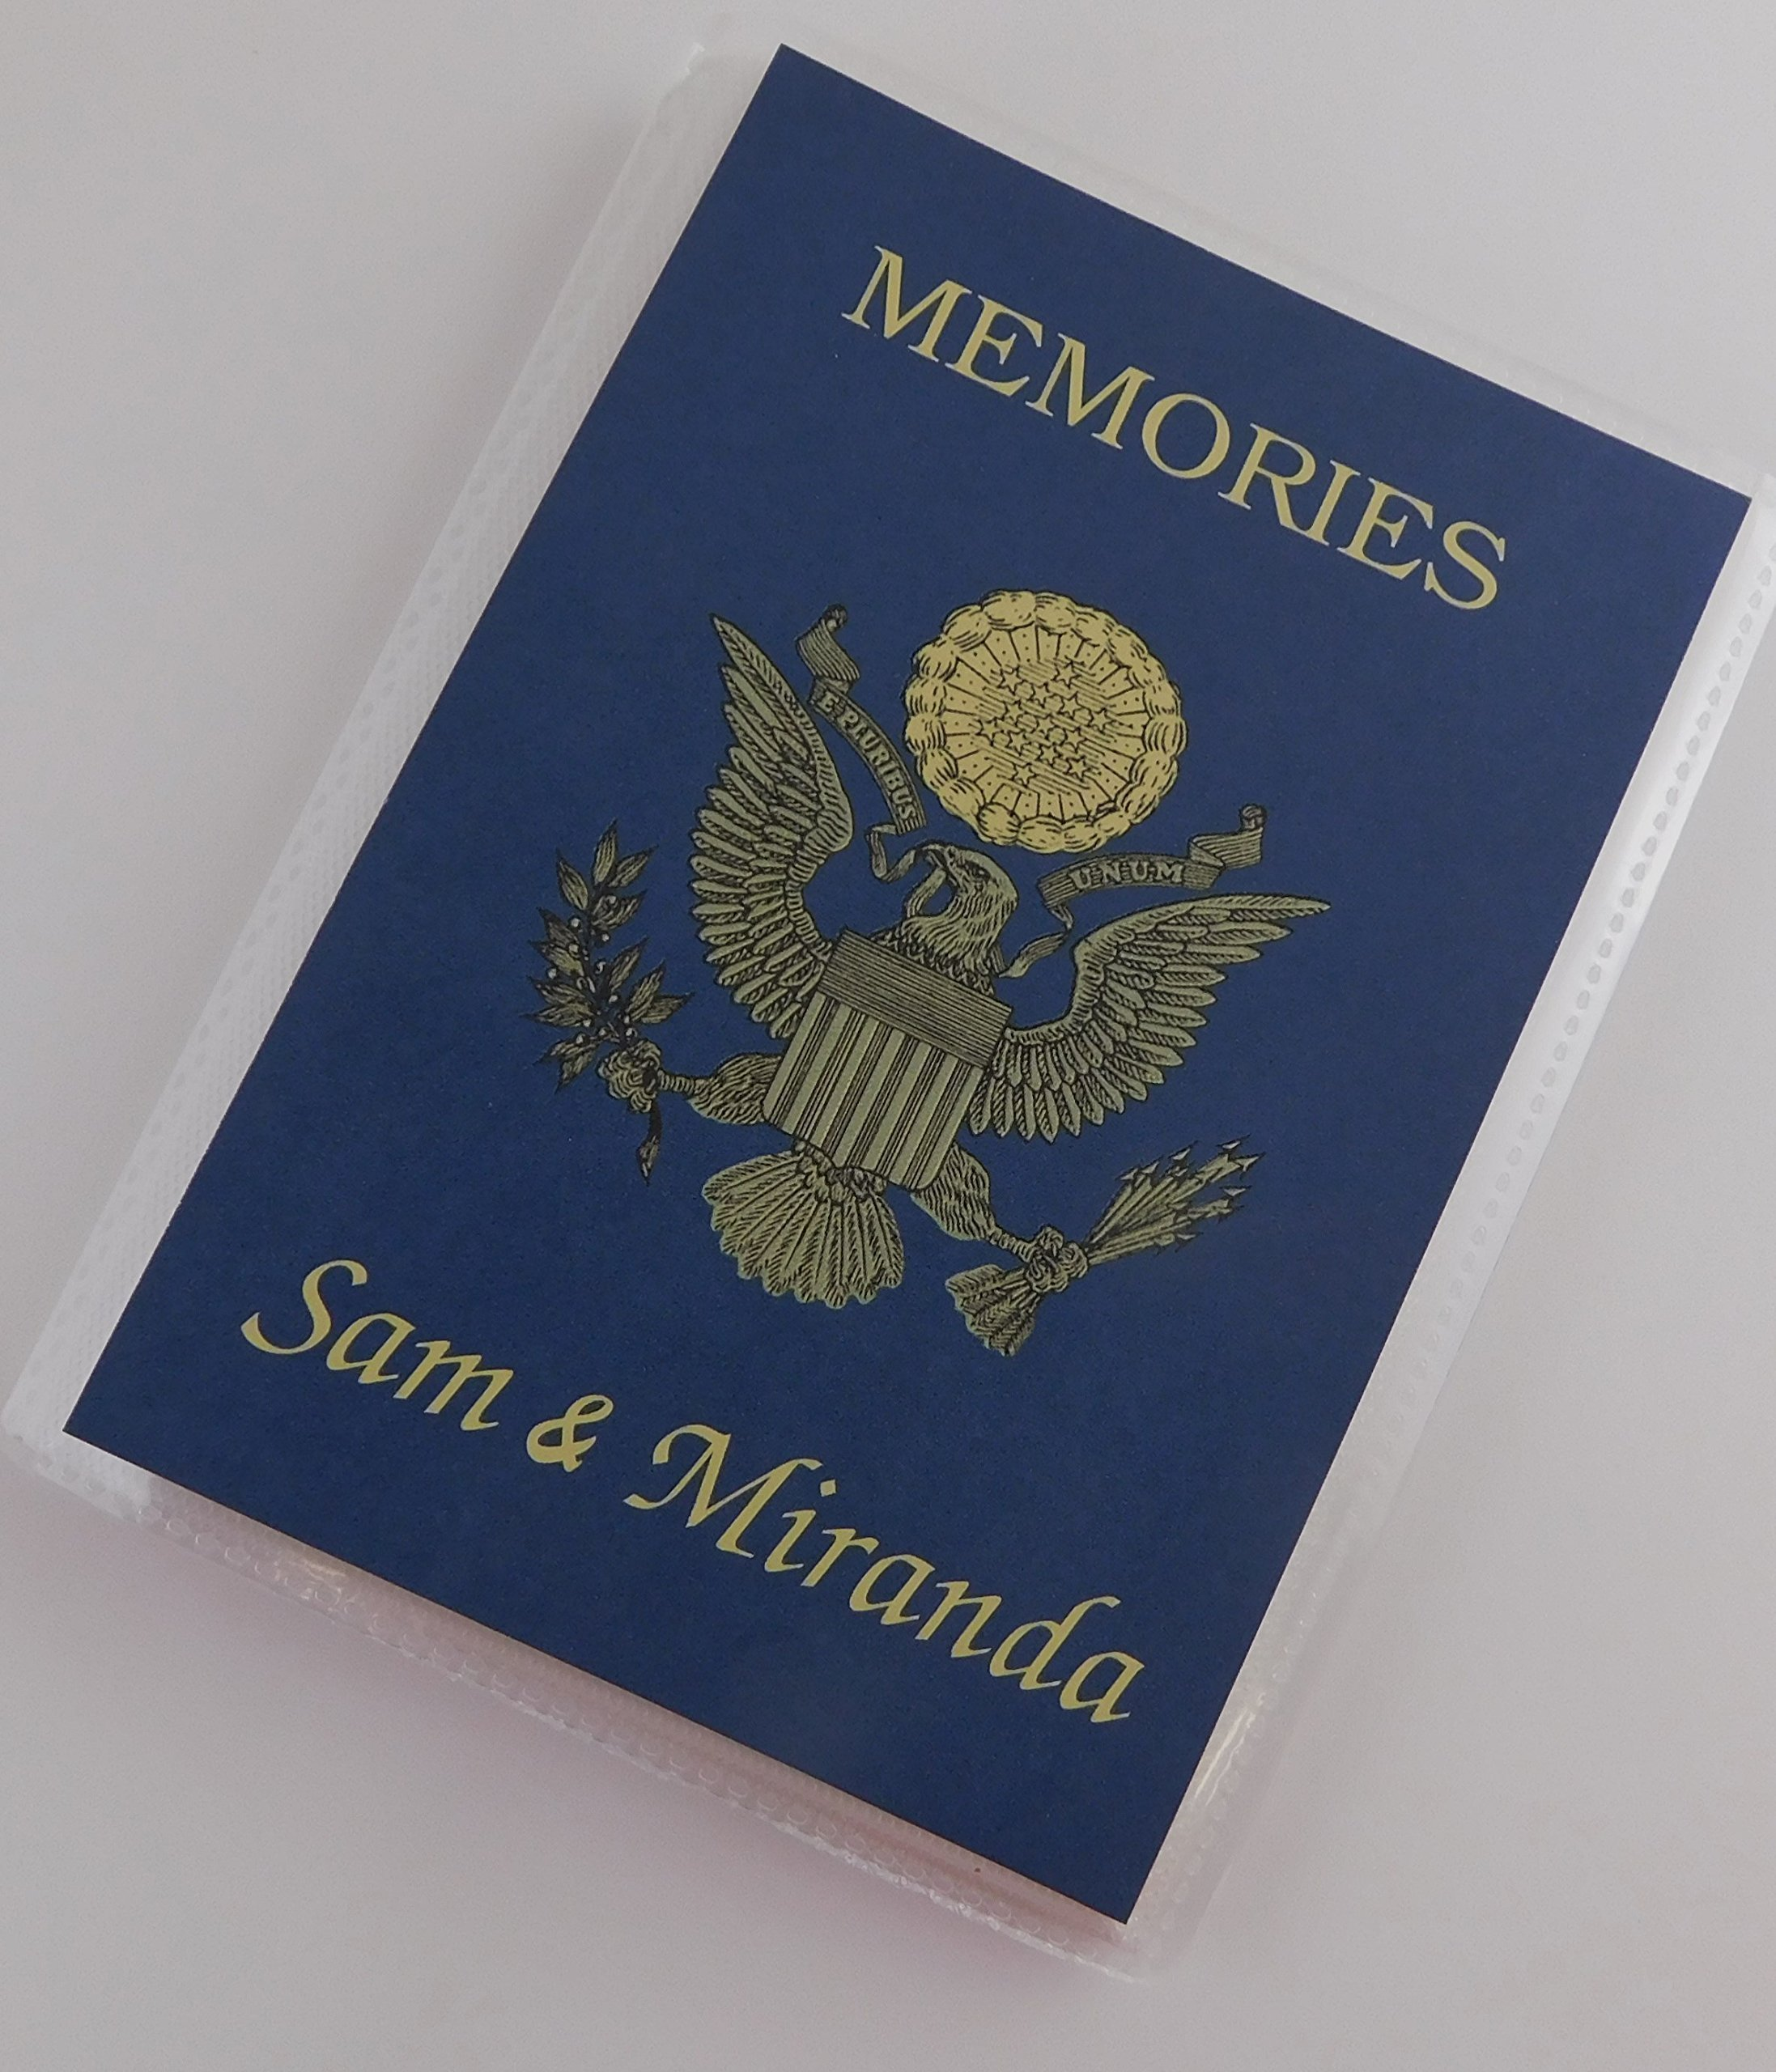 Vacation Photo Album IA#747 4x6 or 5x7 Pictures Passport USA Coat of Arms International Destination Travel